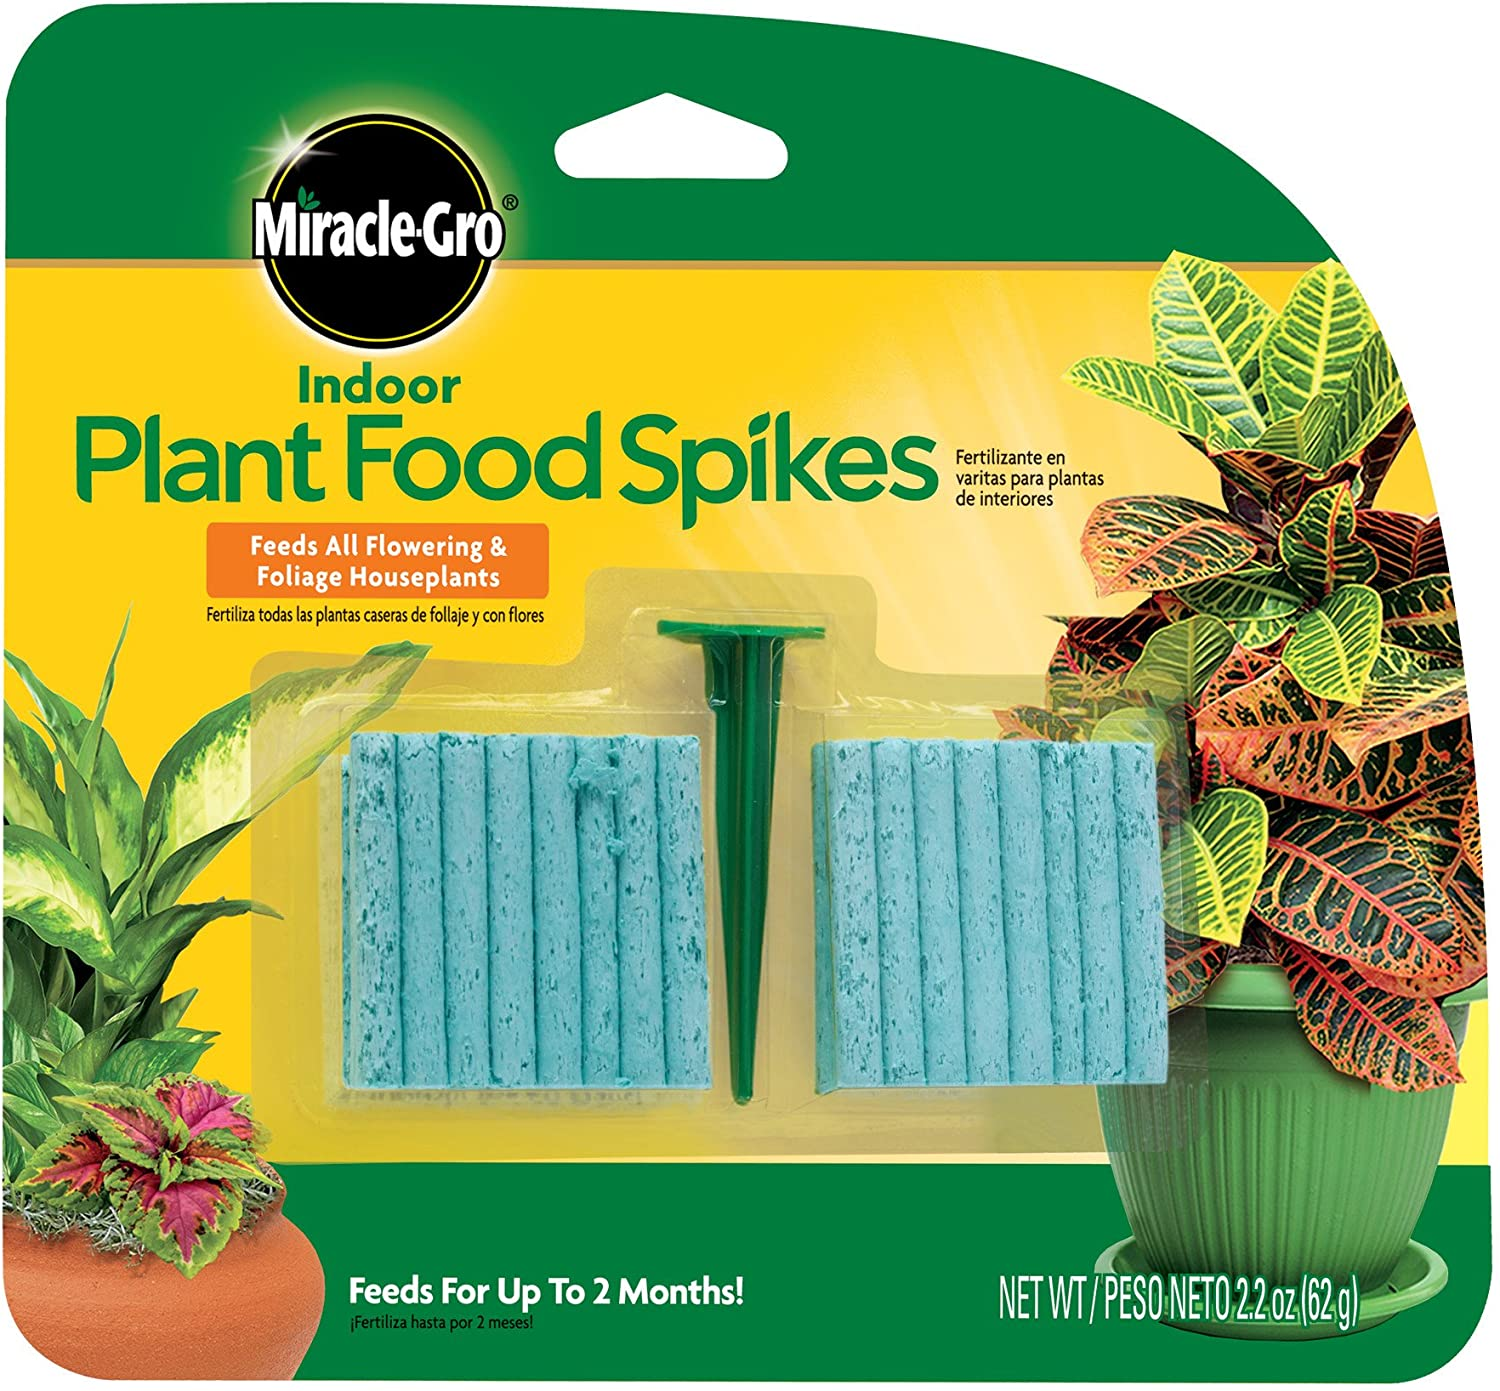 Miracle-Gro Indoor Plant Food Spikes, Includes 48 Spikes - Continuous Feeding for all Flowering and Foliage Houseplants - NPK 6-12-6, 1 Pack of 48 Spikes : Fertilizers : Garden & Outdoor